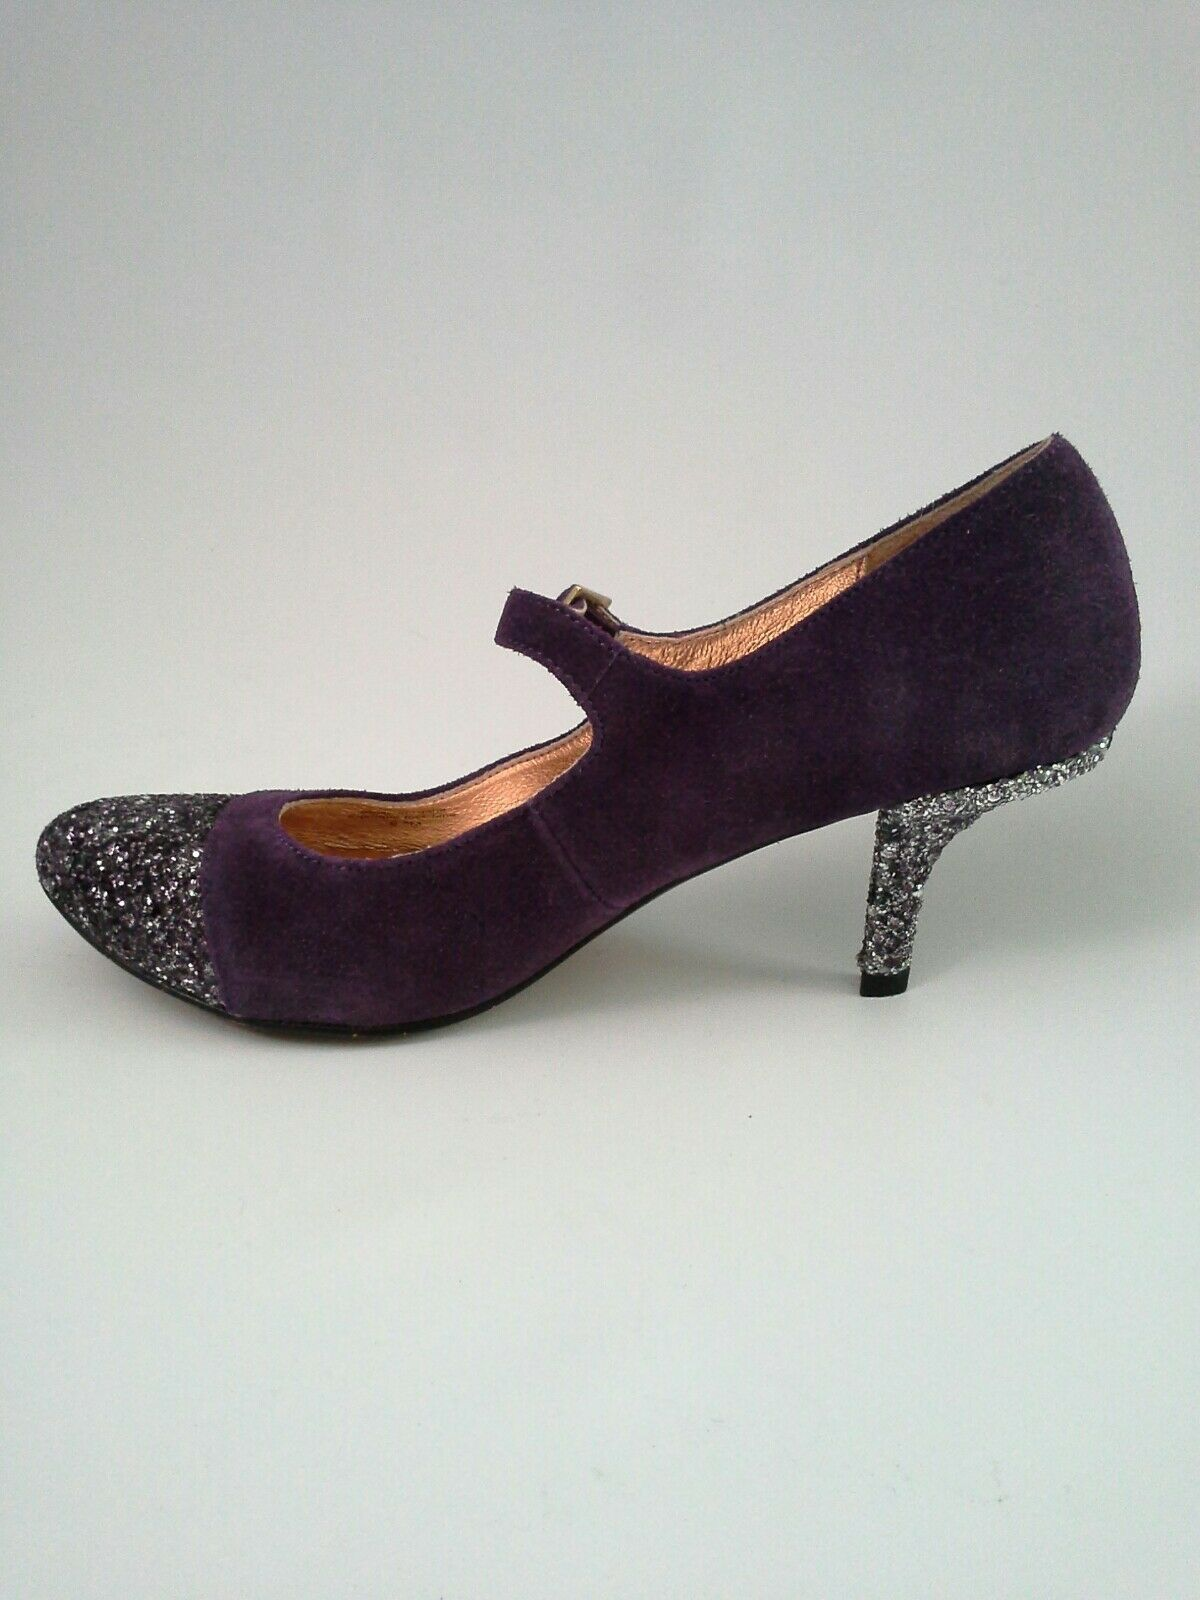 Anthropologie Anthropologie Anthropologie Glitter Cap Maryjane Heel Pumps by Miss Albright Sz 6.5  158 c3ee28